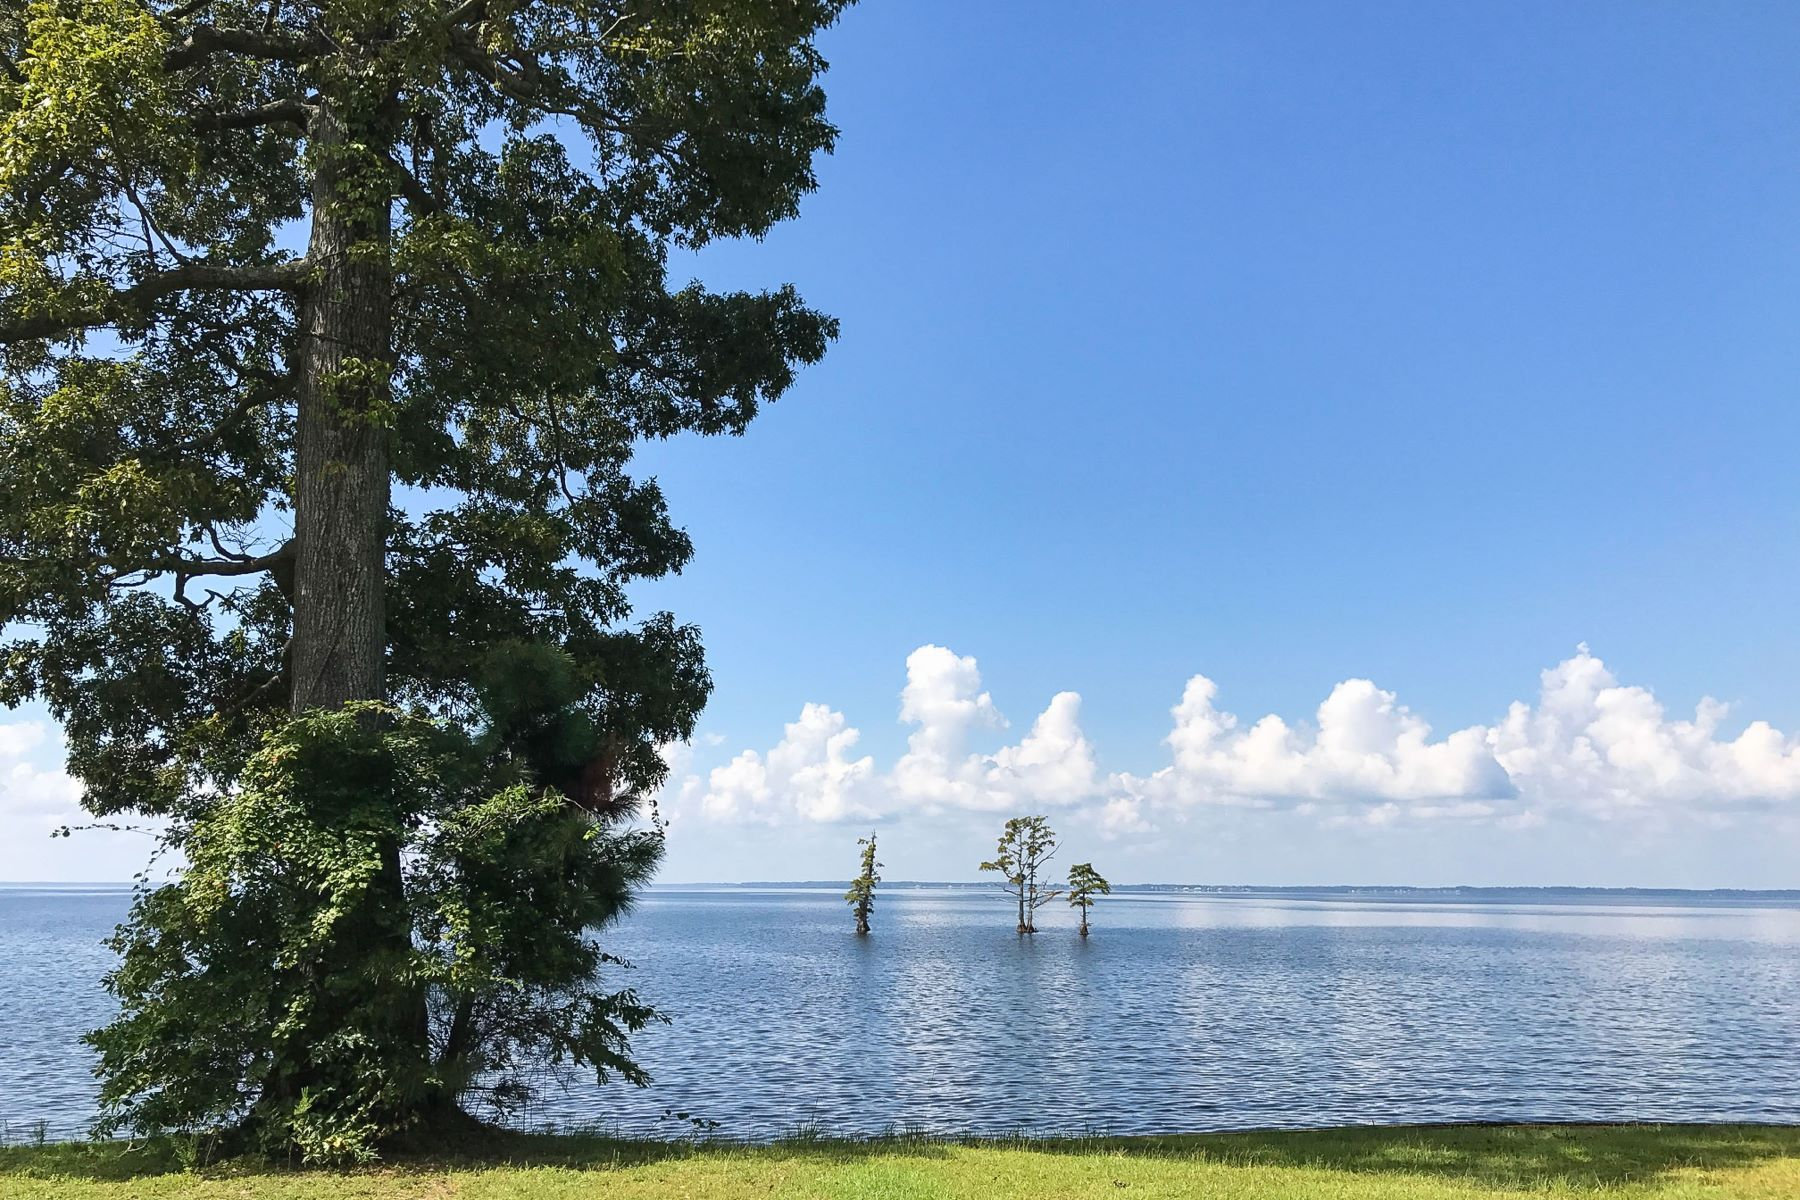 Terreno por un Venta en Edenton Bay Plantation Waterfront Lot 21 111 Heritage Point Dr Edenton, Carolina Del Norte 27932 Estados Unidos